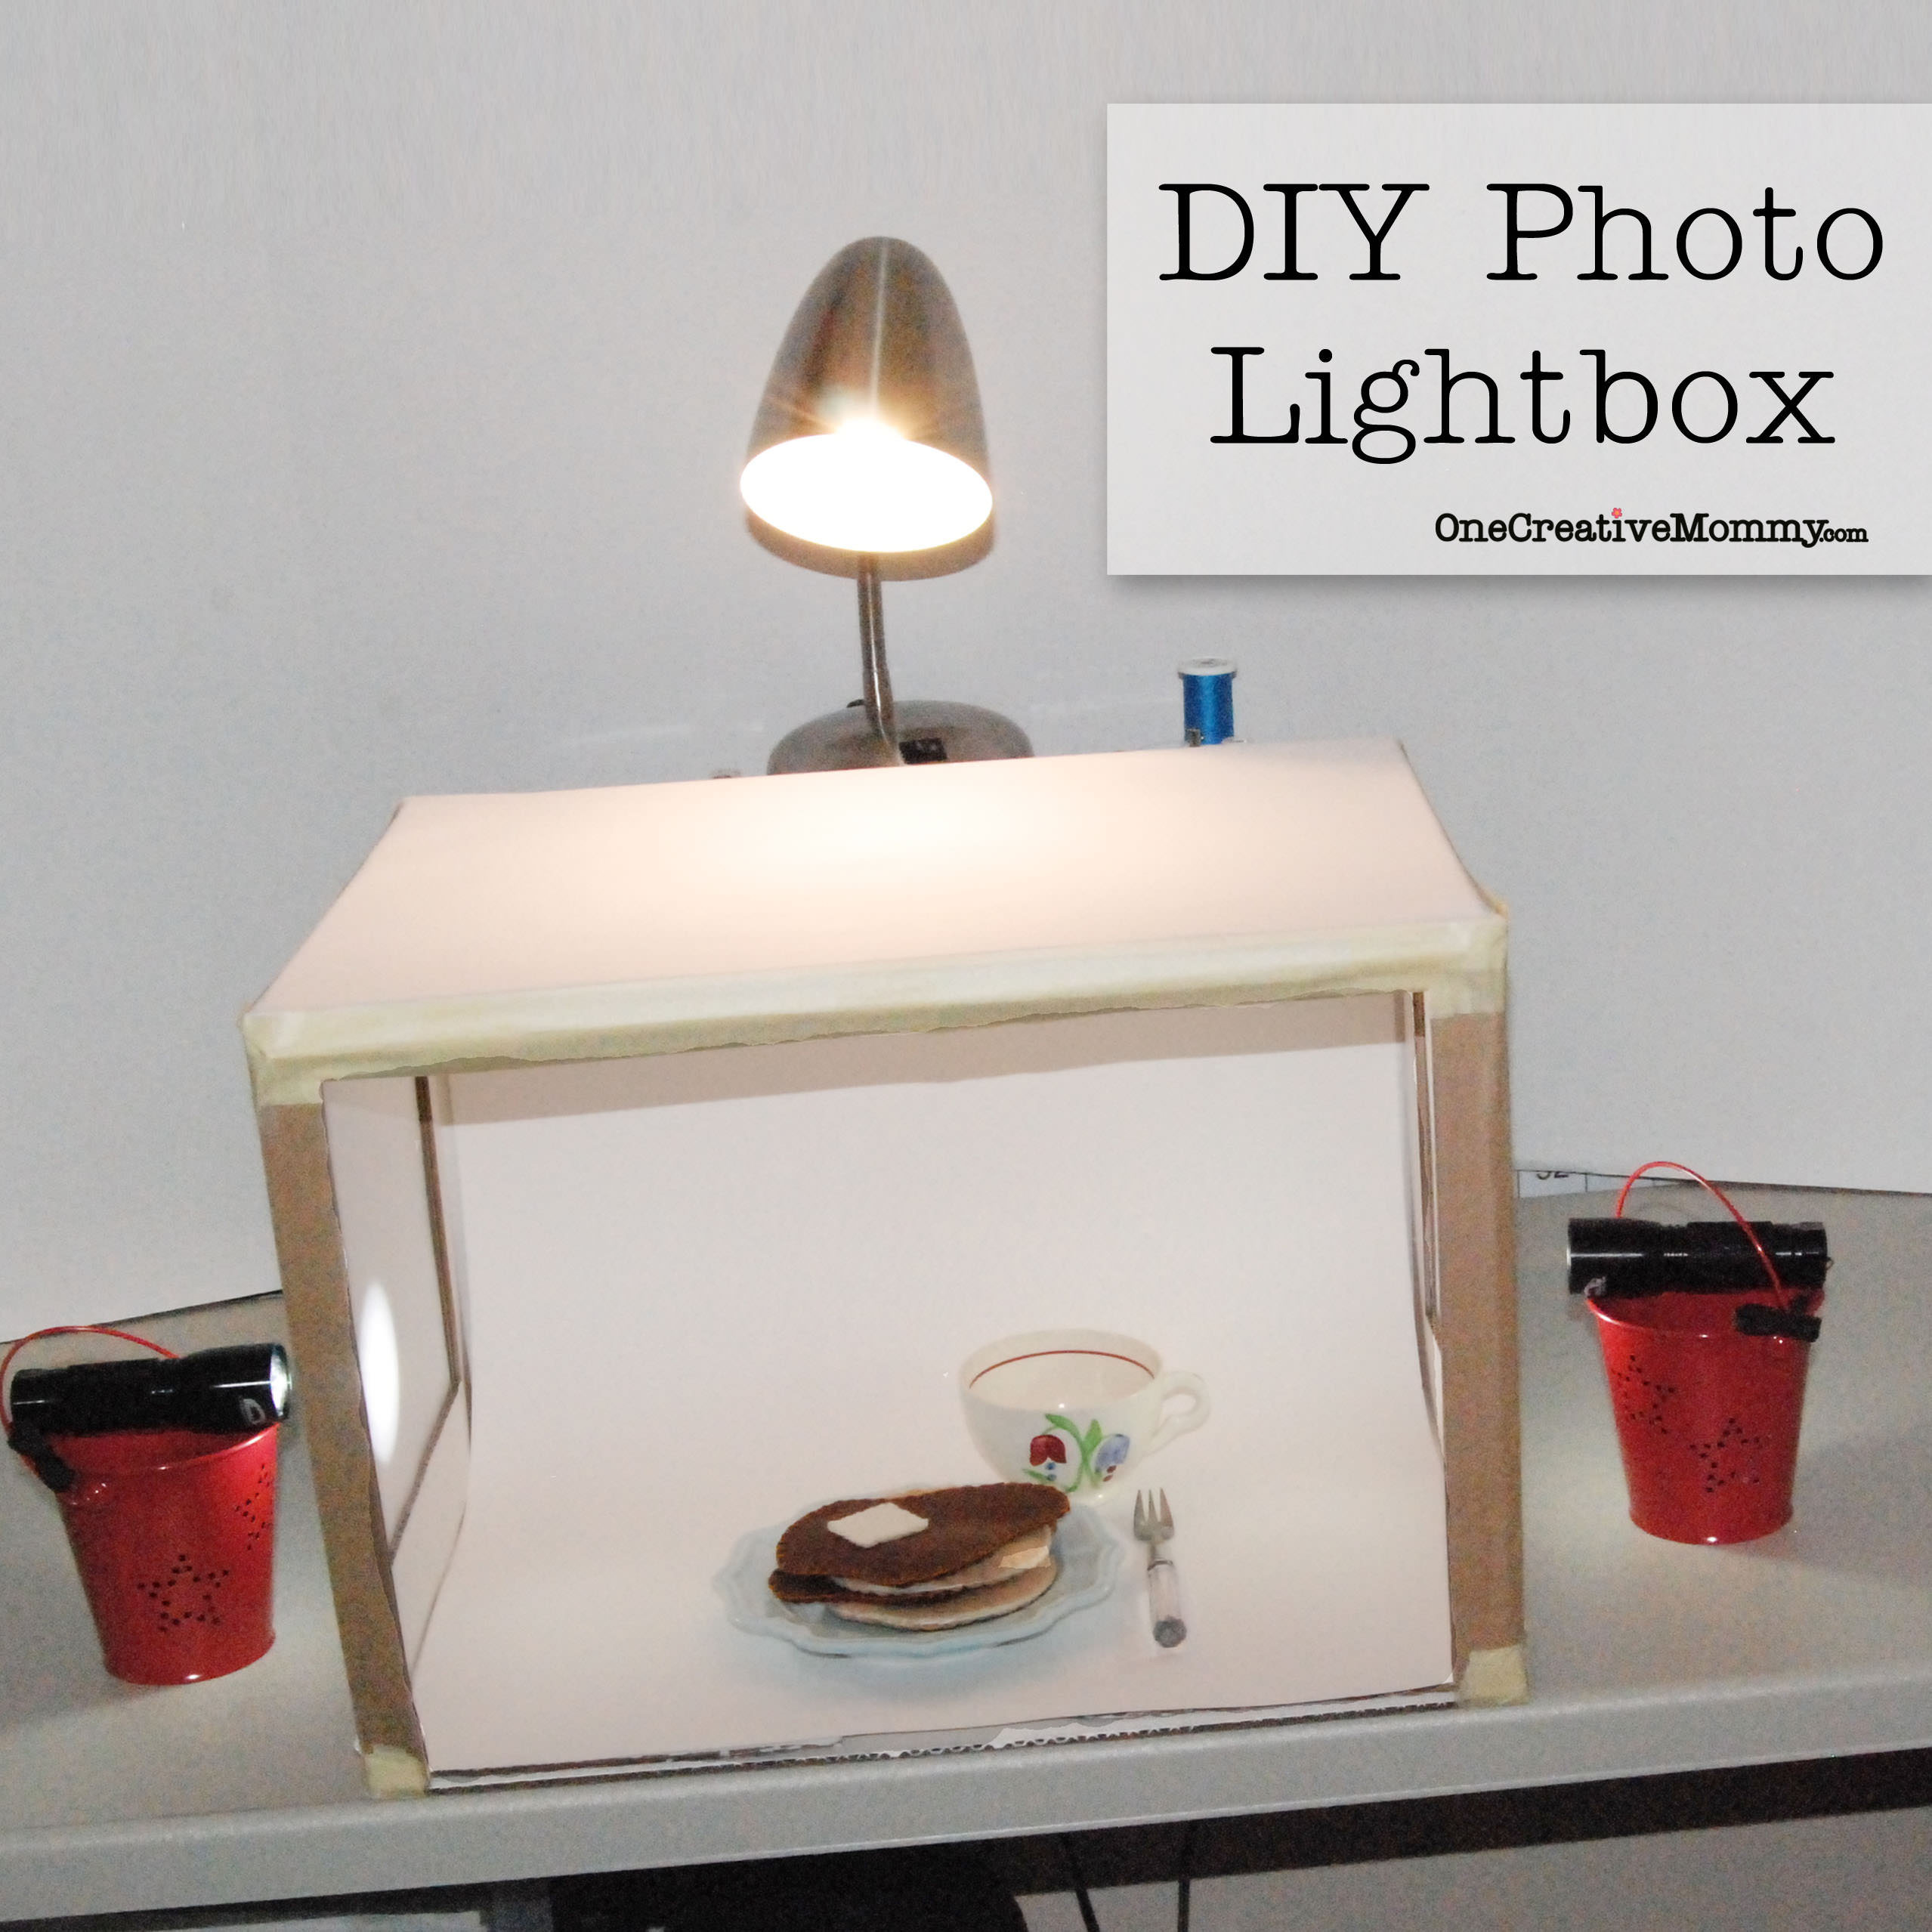 Photo Light Box DIY  Grow Your Blog Series DIY Lightbox onecreativemommy